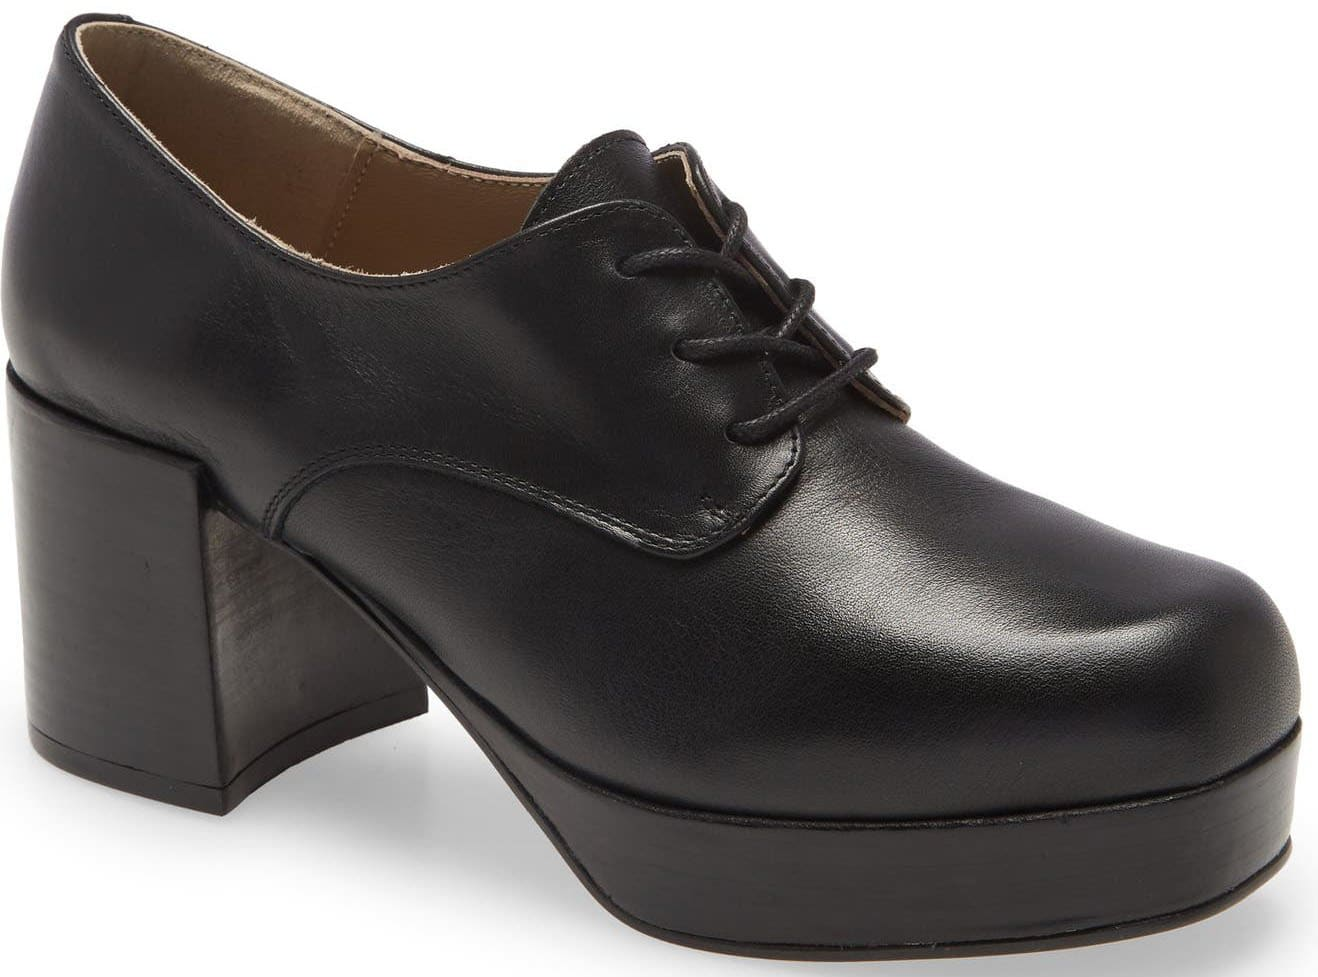 Chunky heel and platform elevate a classic oxford-inspired profile